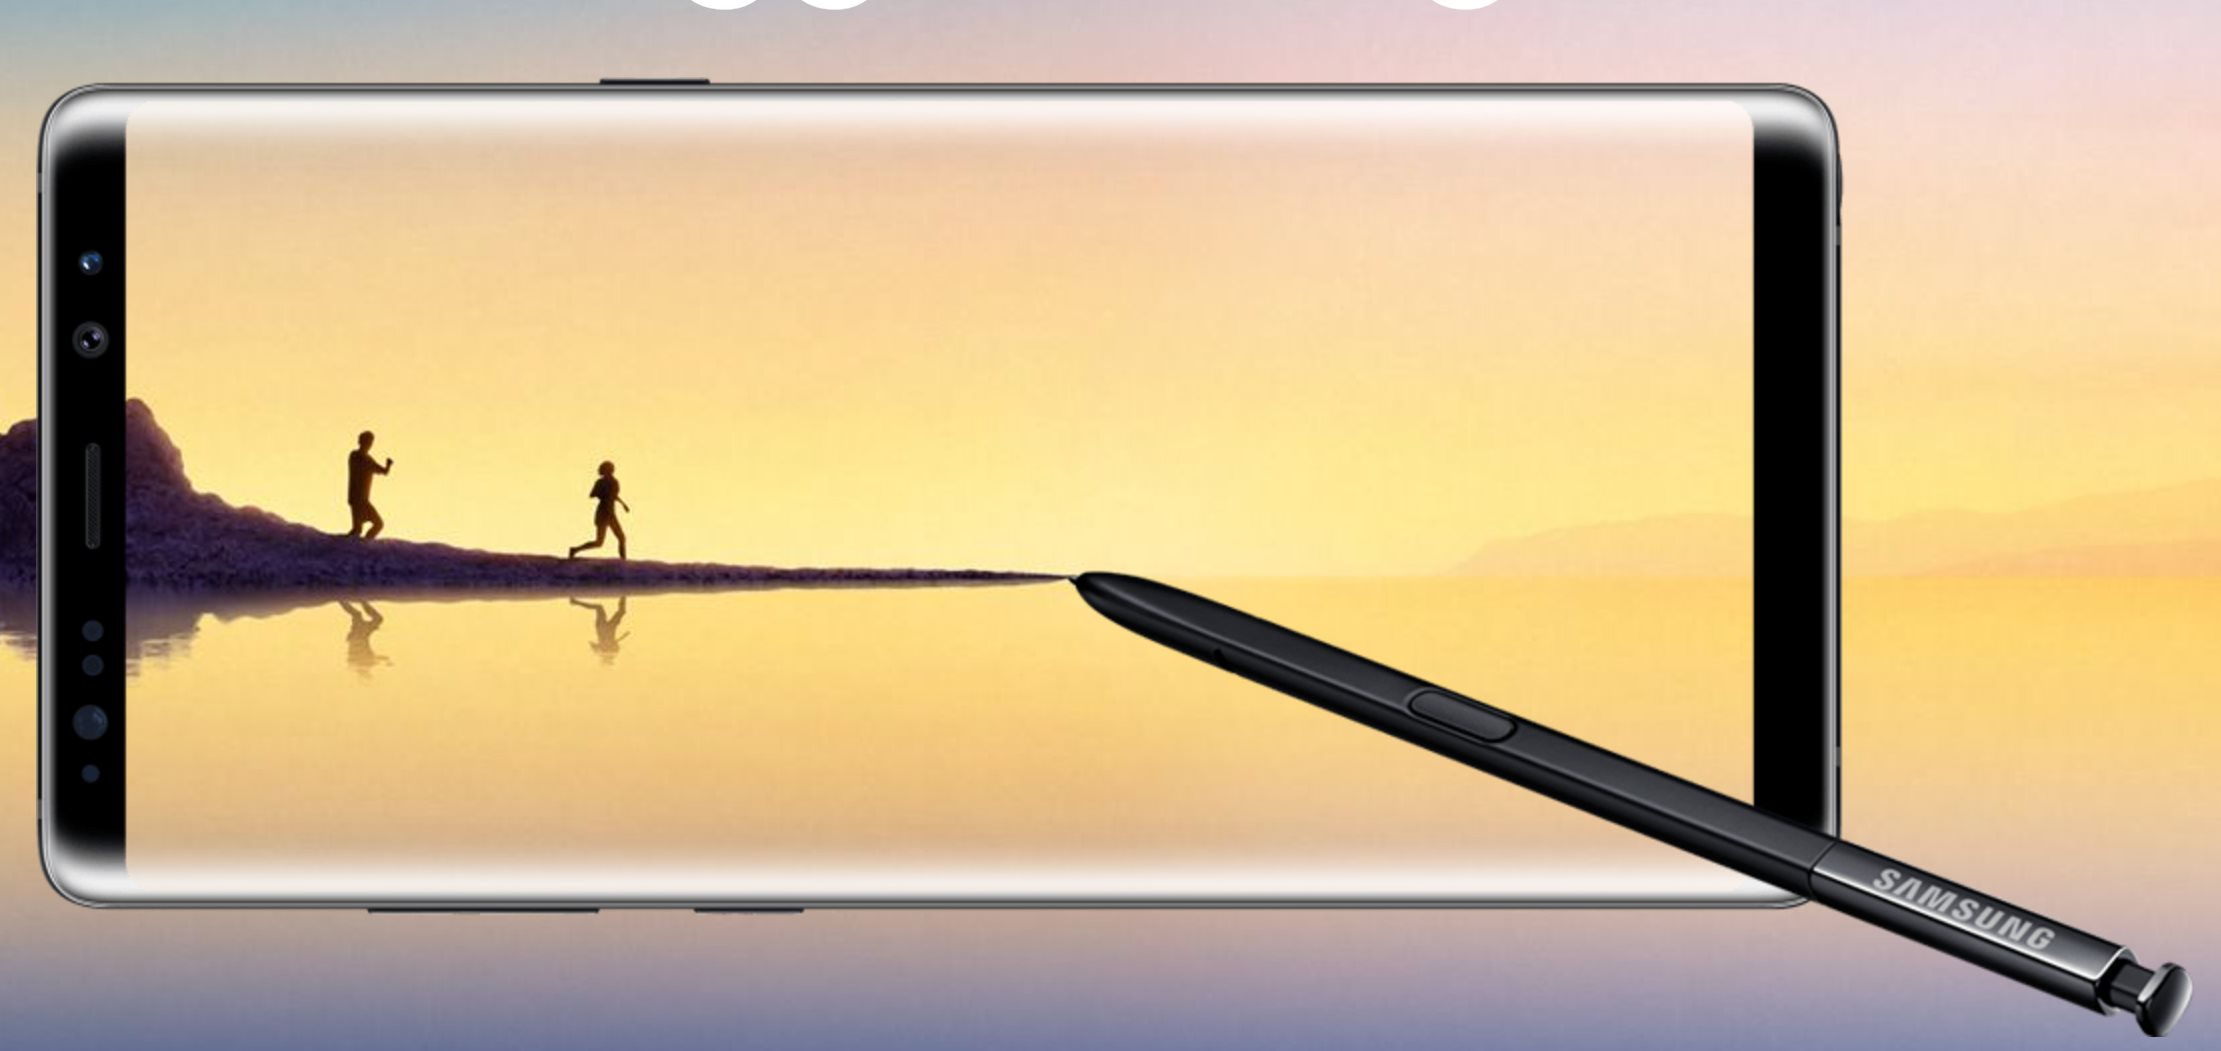 Samsung Launches the Galaxy Note 8